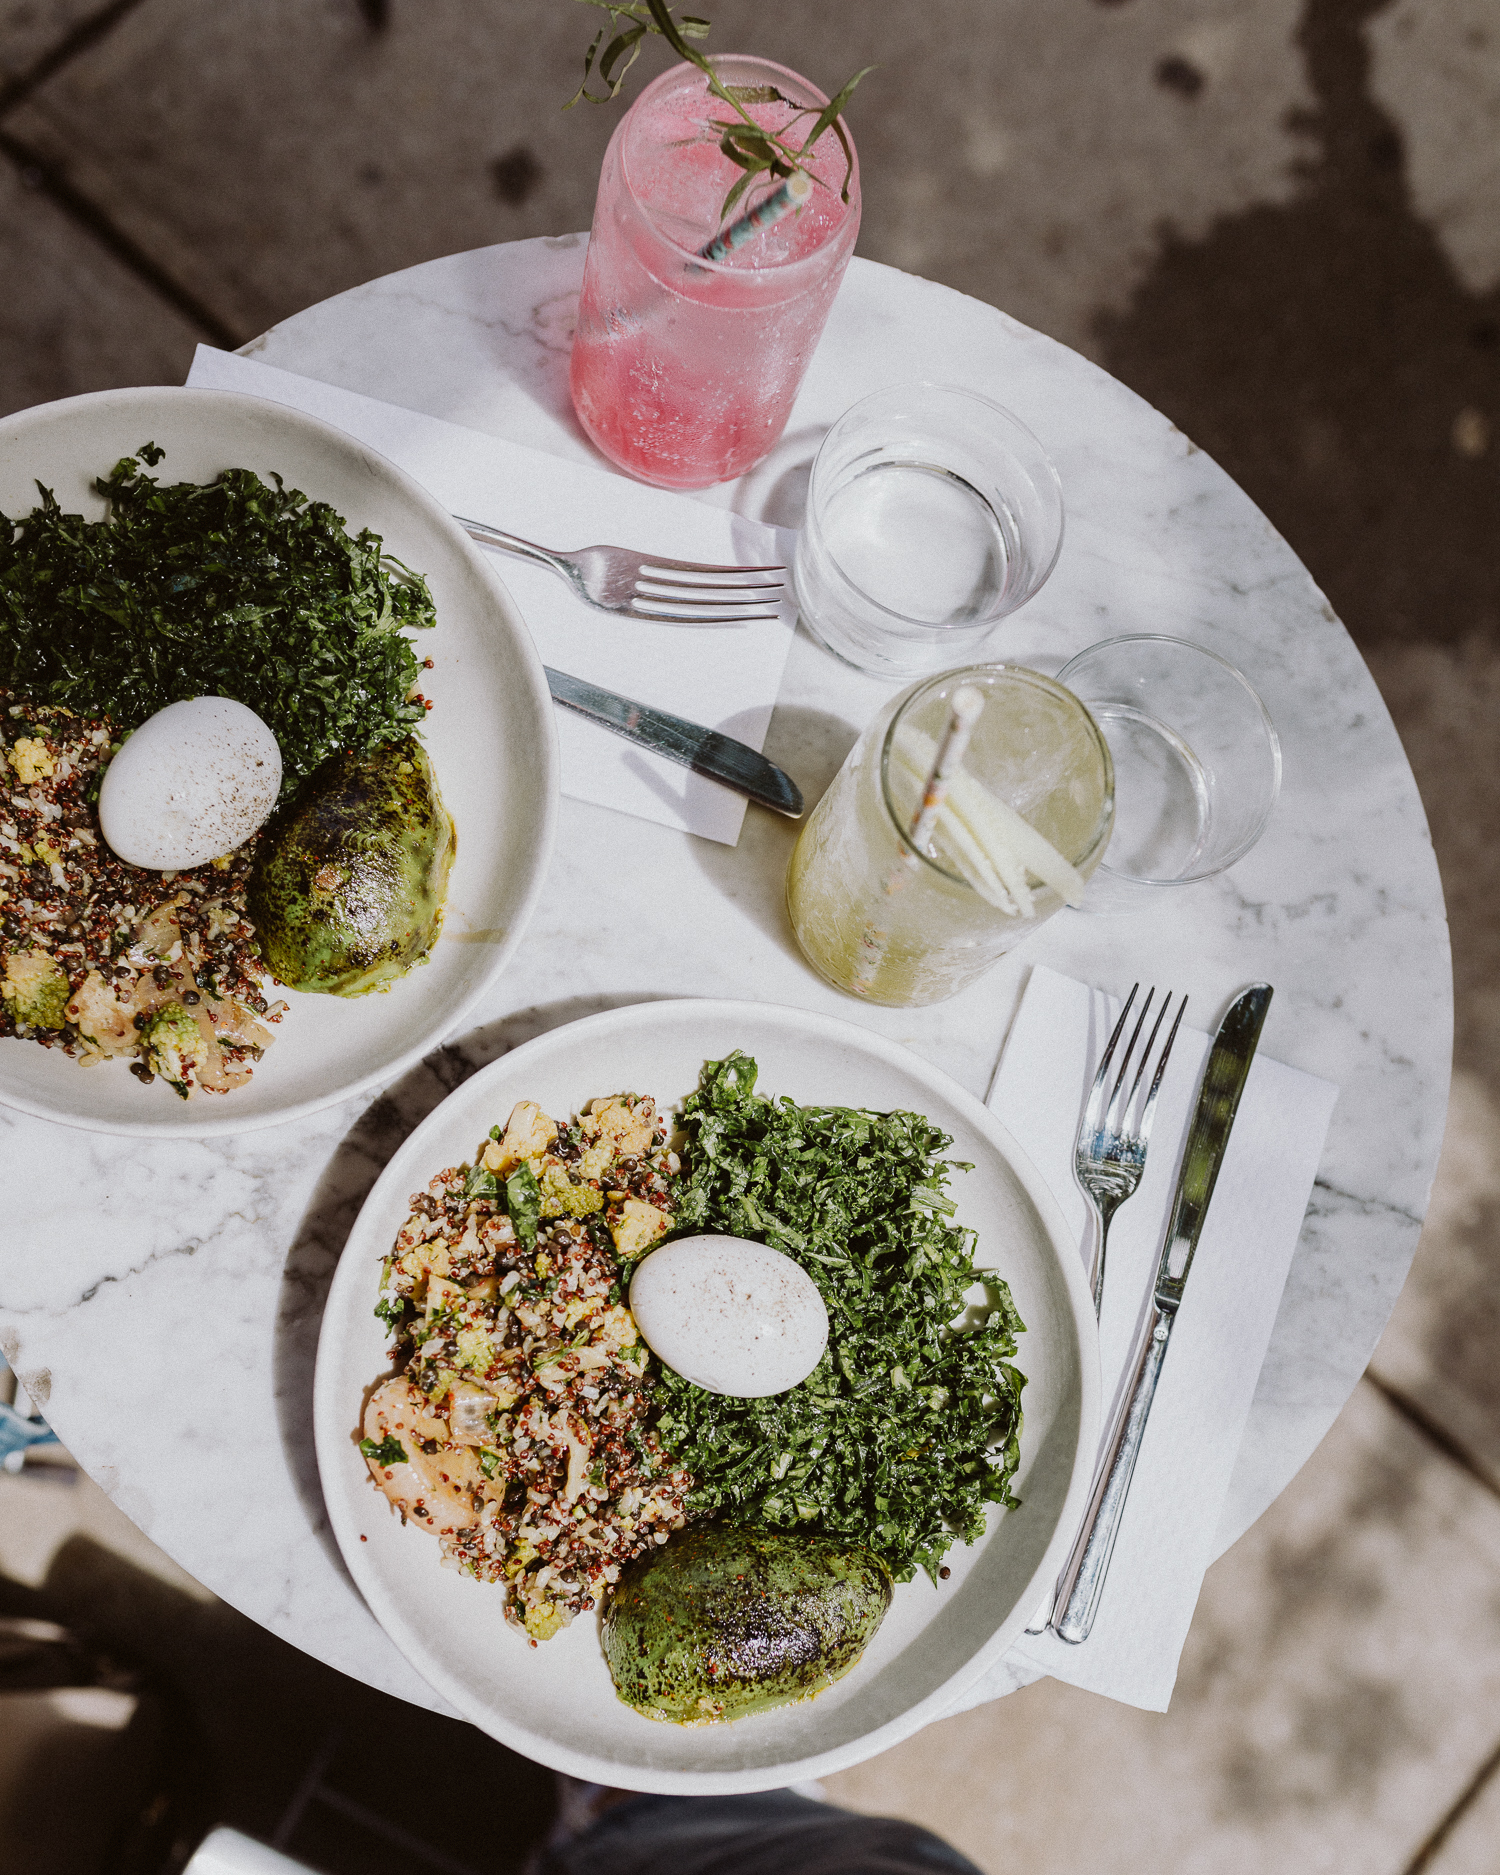 New York City Food Guide: Where to eat in NYC | Love Daily Dose